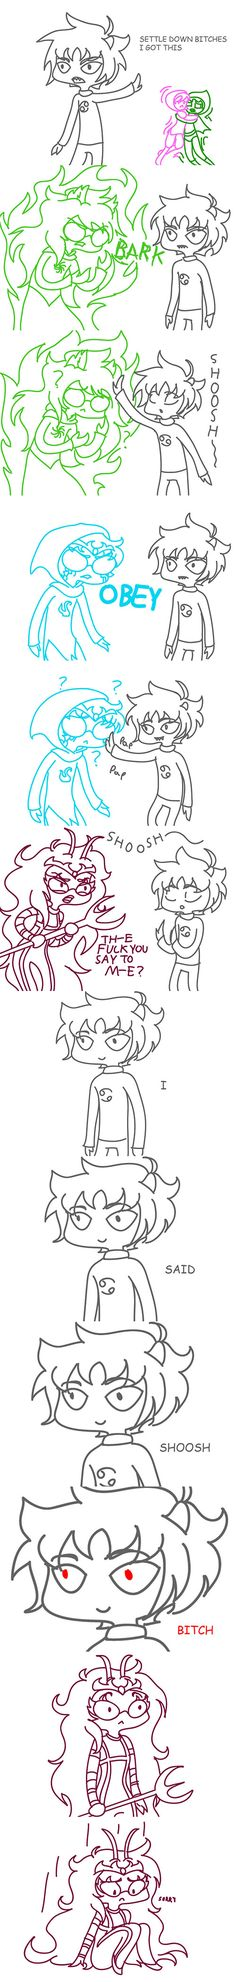 I don't own this; belongs to http://inuleeli.tumblr.com/post/43279812786/karkat-to-the-rescue